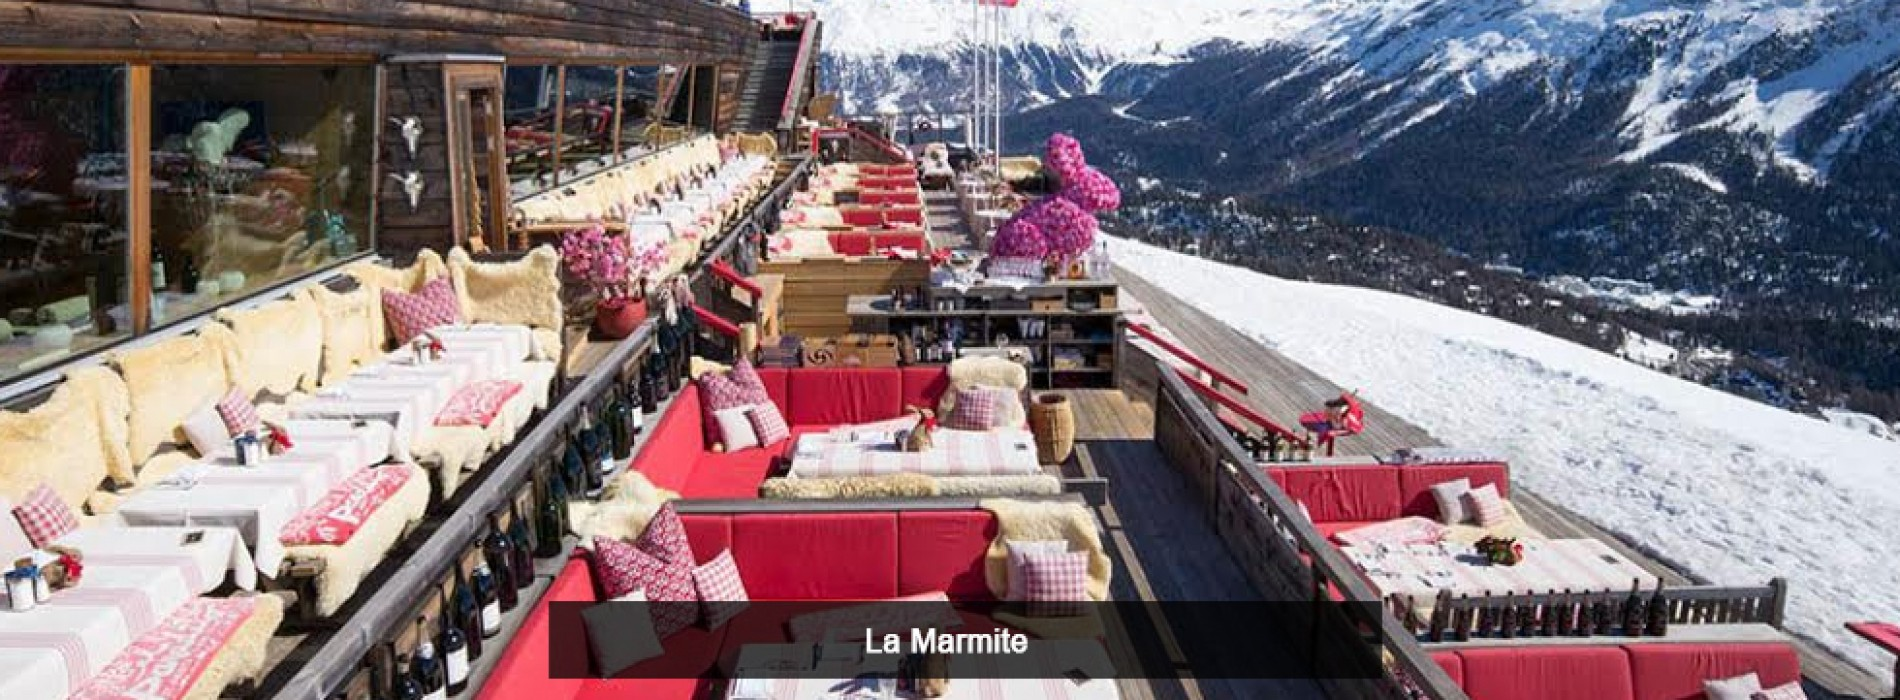 A foodie's guide to St. Moritz and the Engadin Valley